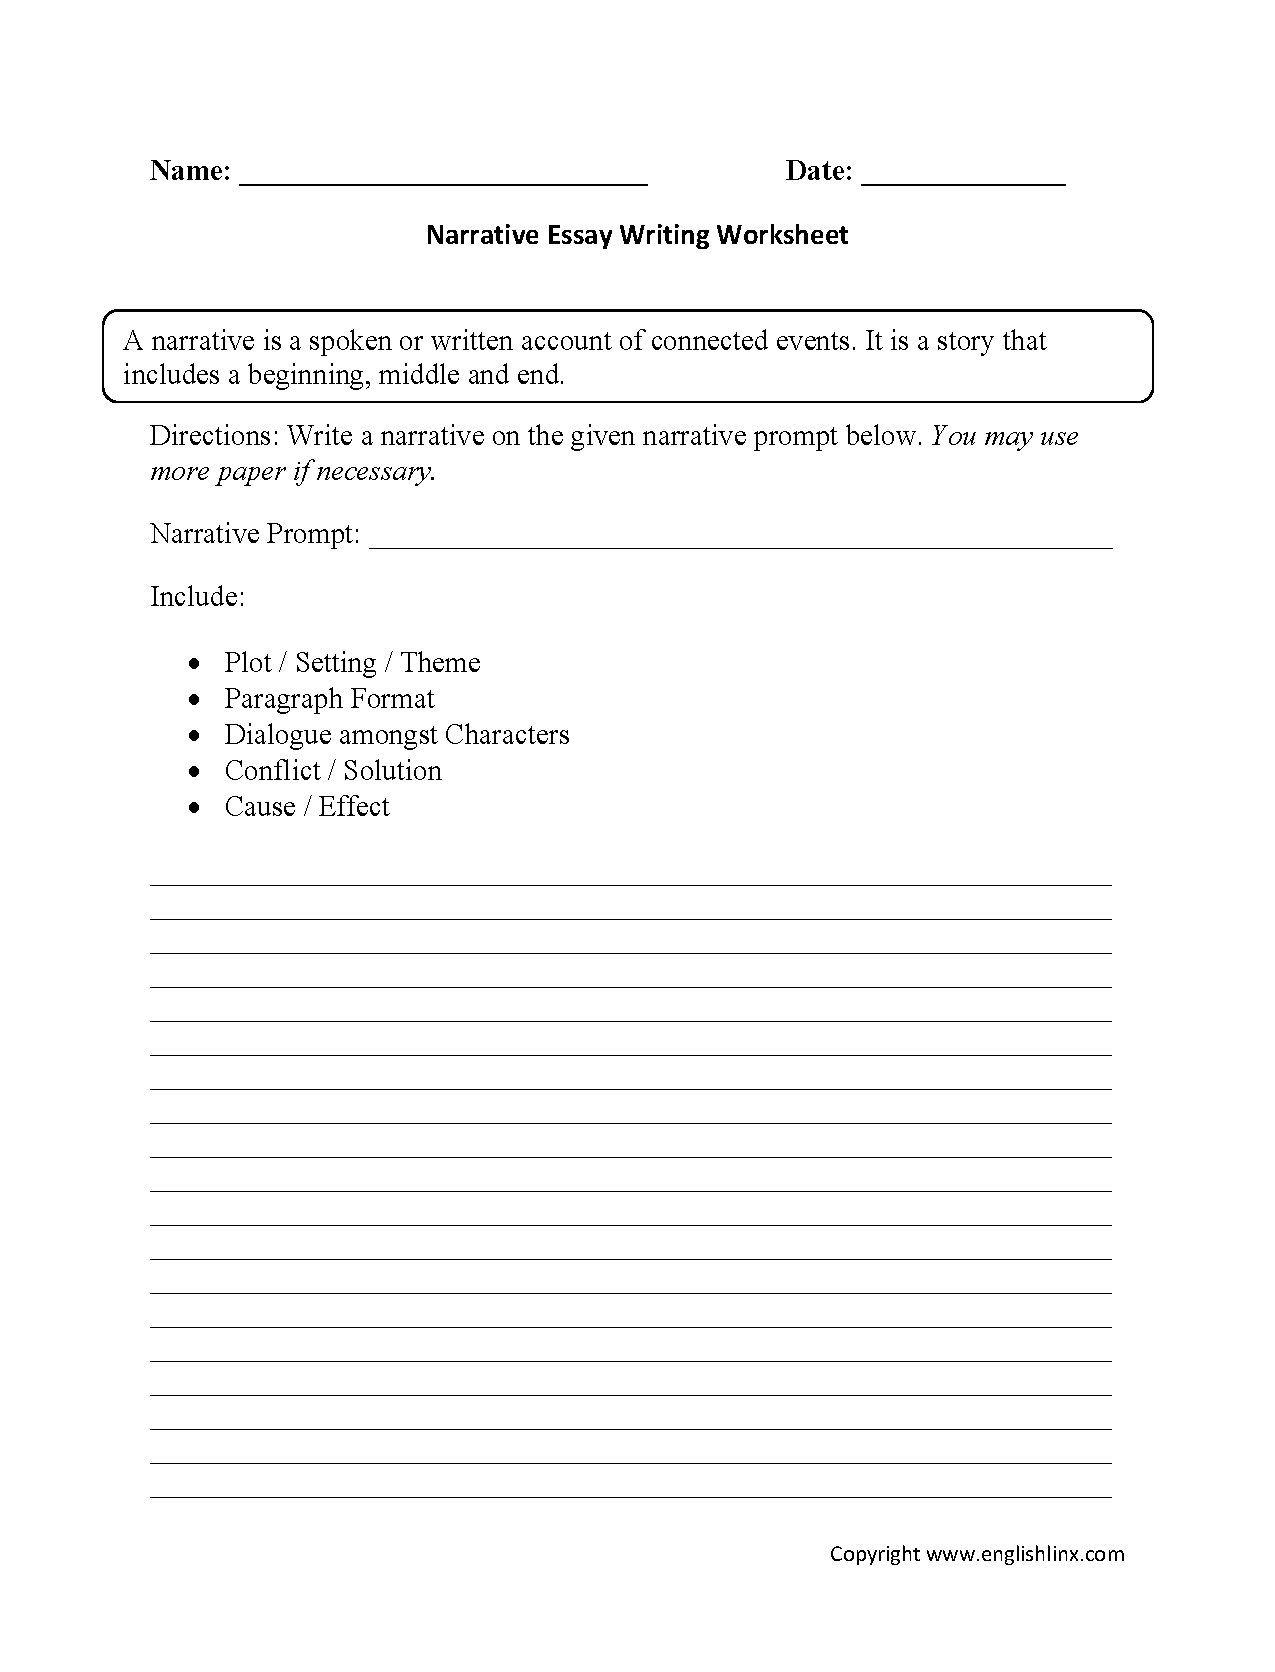 5th Grade Essay Writing Worksheets Pspllture Quest